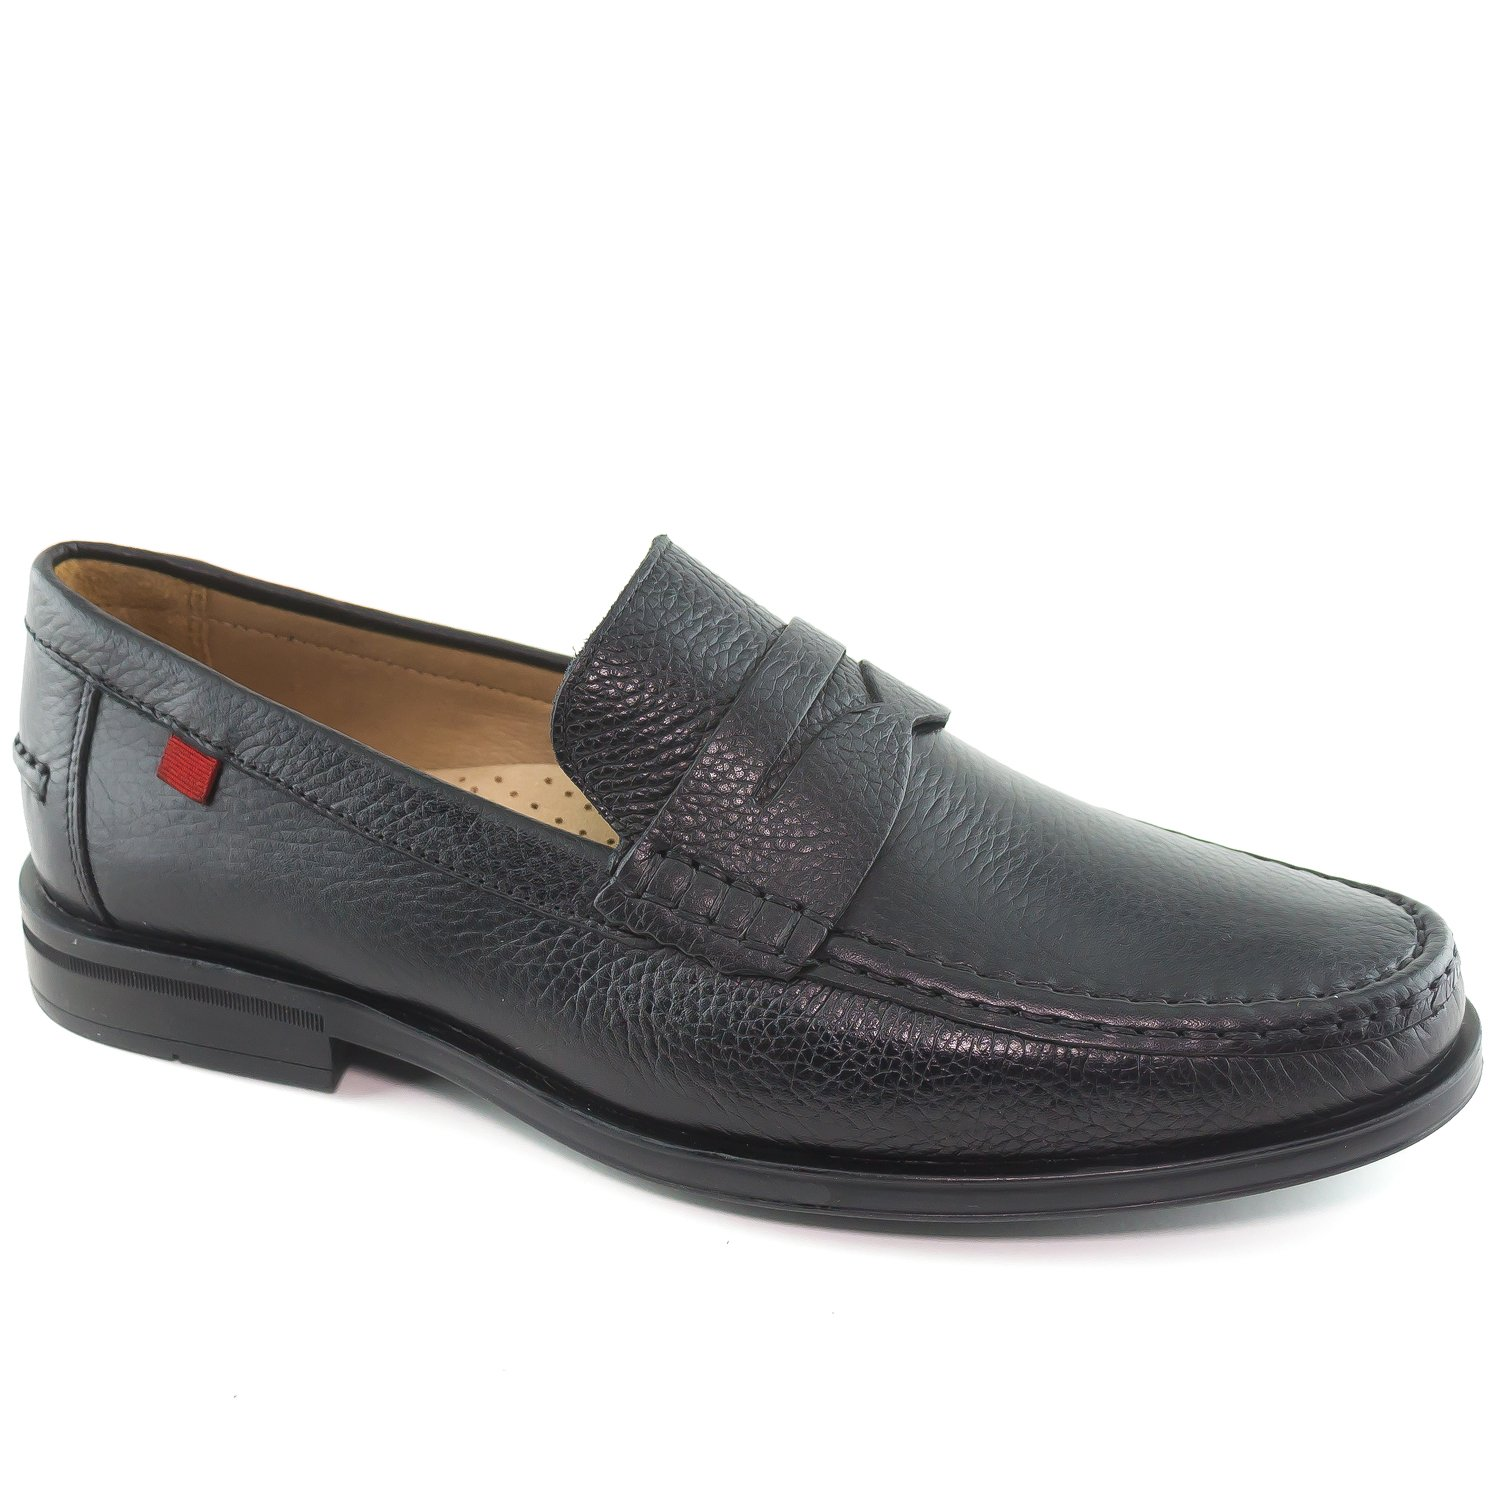 Mens Genuine Leather Made in Brazil Cortland Street Black Grainy Leather Loafers 12